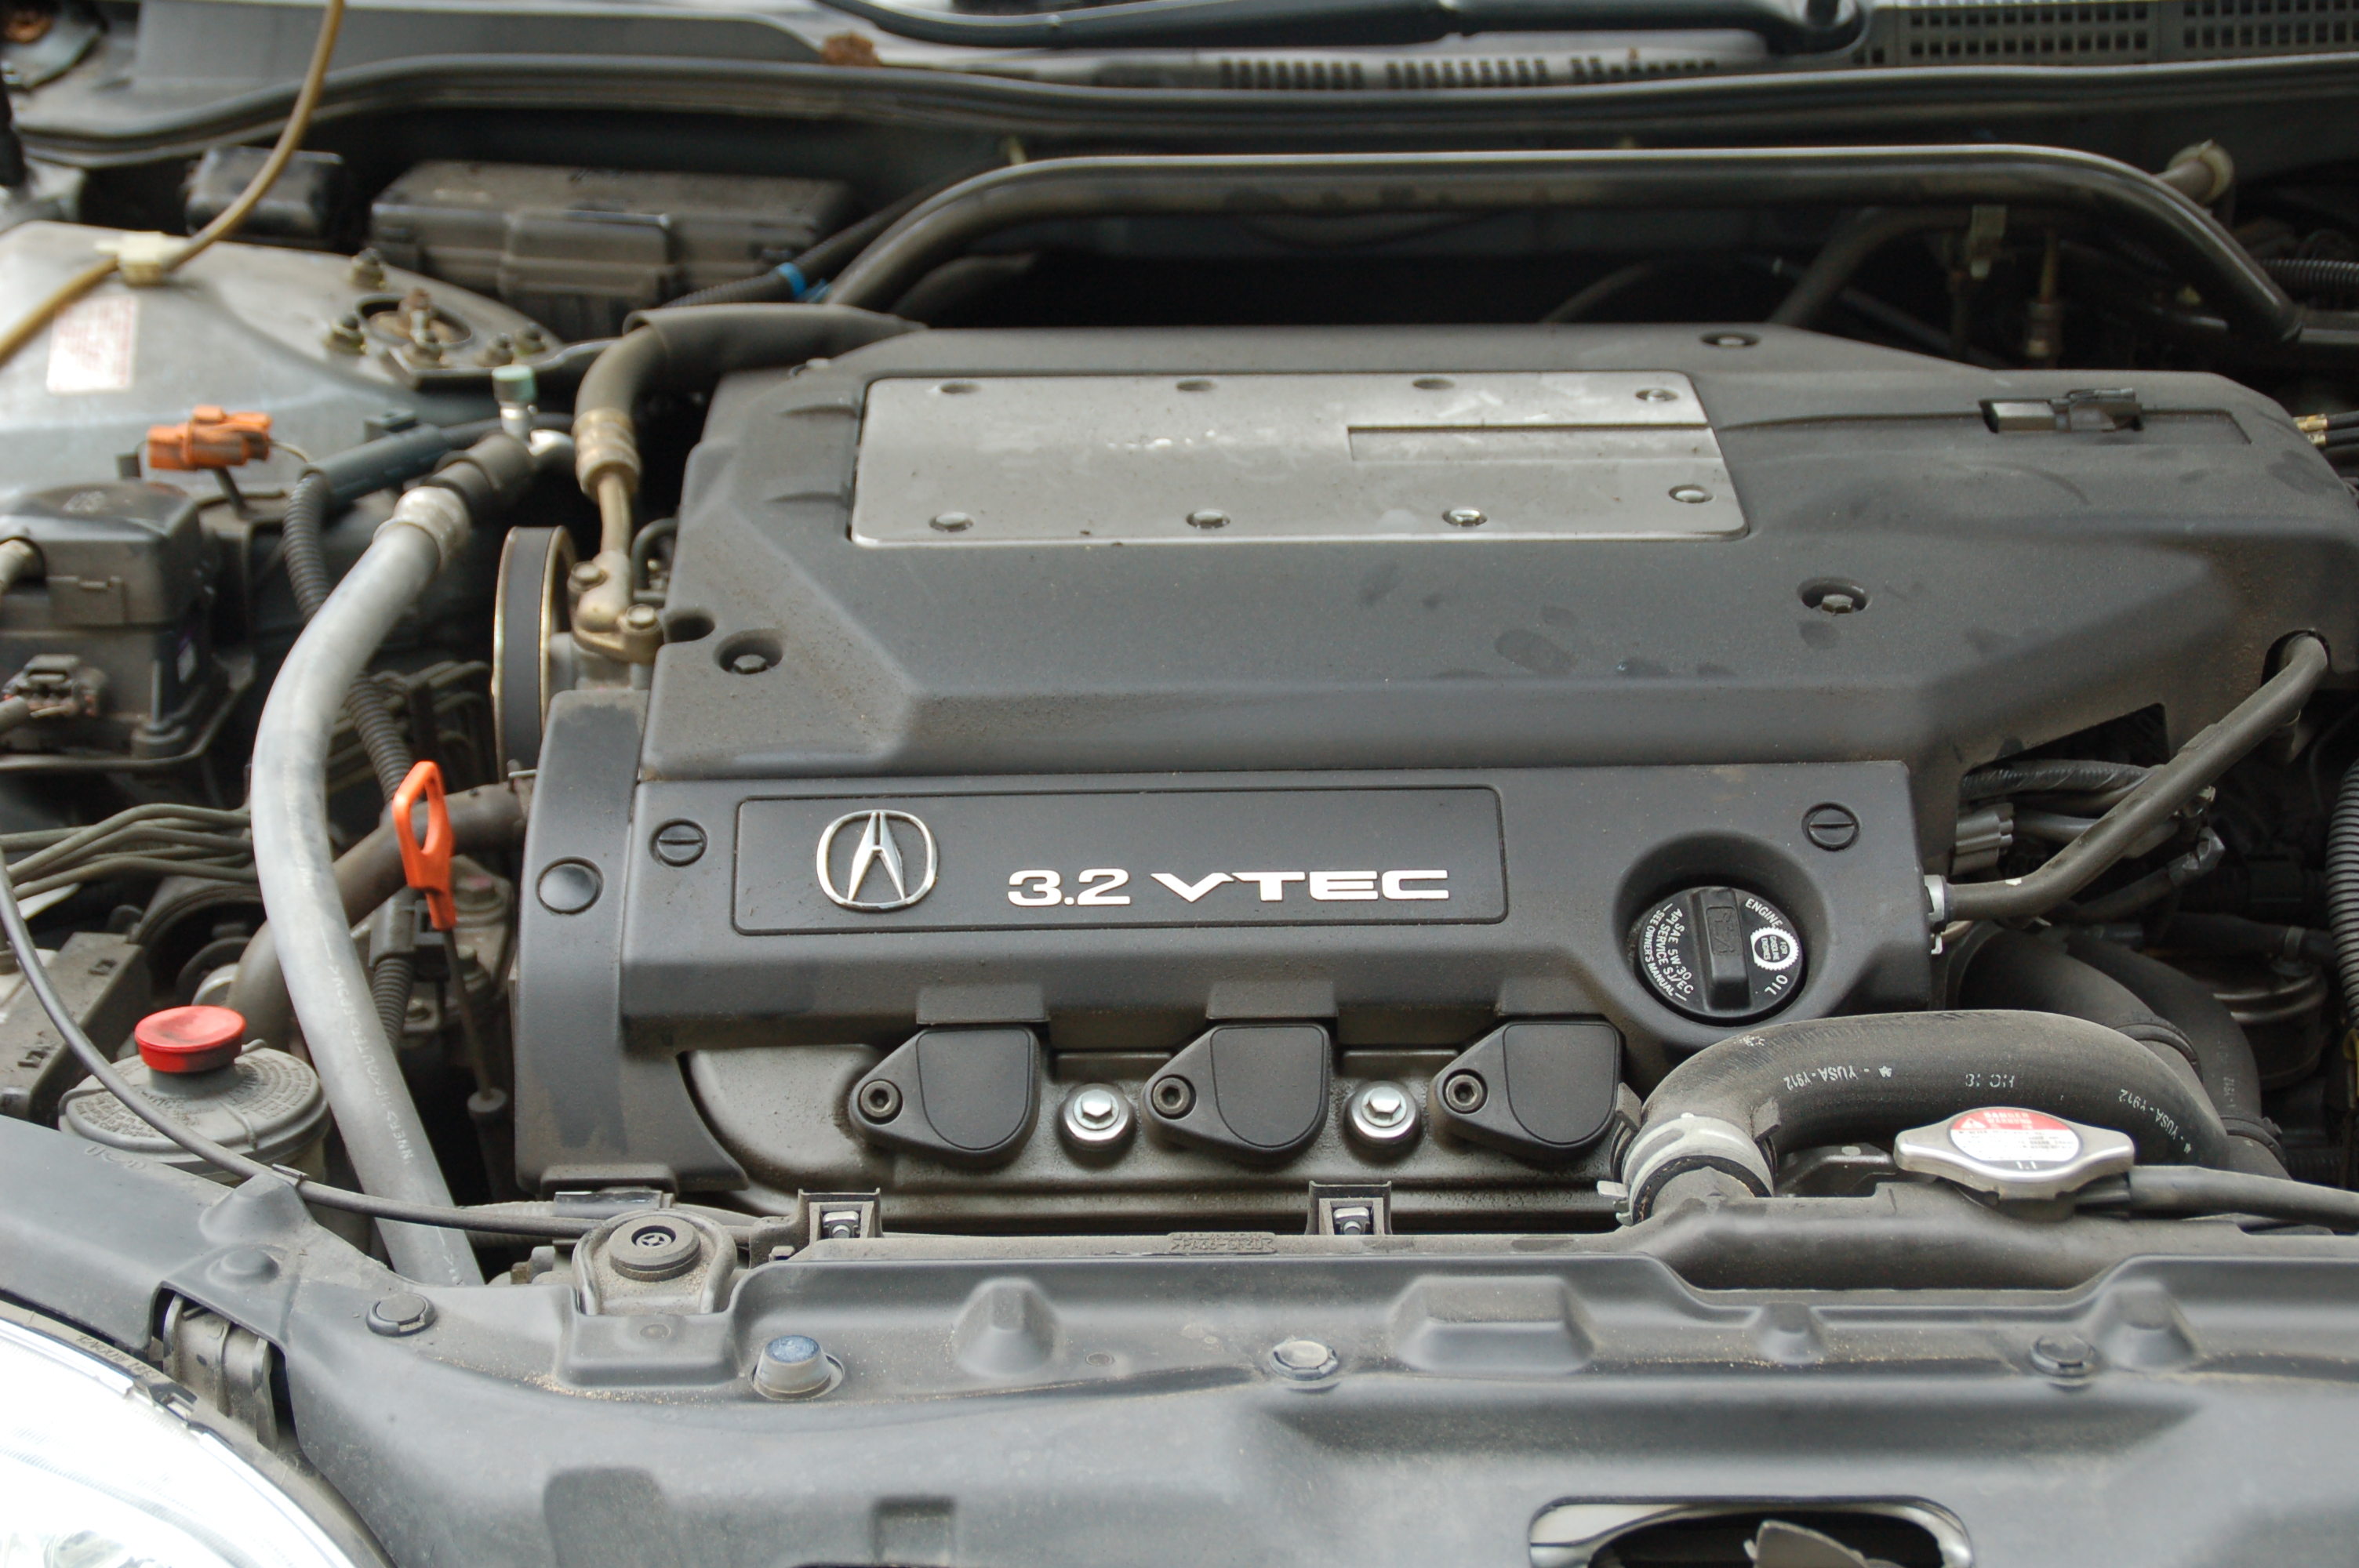 File:Acura TL 3.2 engine.jpg - Wikimedia Commons